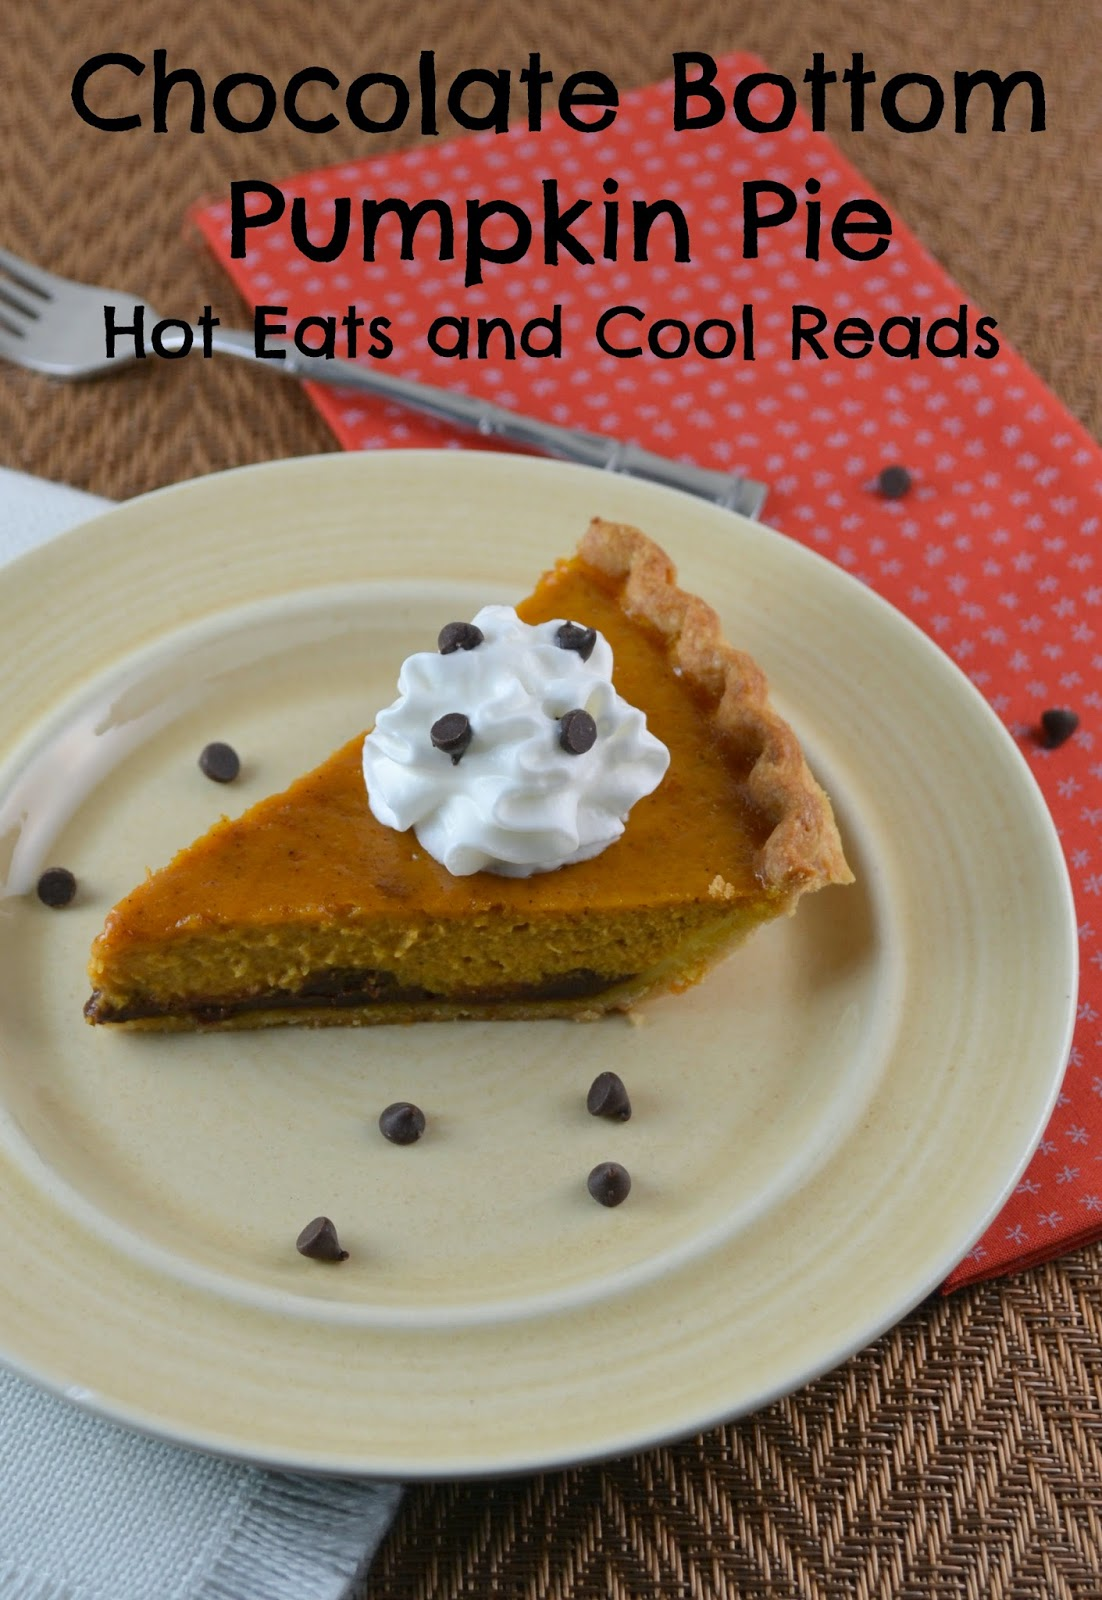 Chocolate Bottom Pumpkin Pie: Thanksgiving Pie Recipes: 10 Yummy Alternatives To Pumpkin Pie